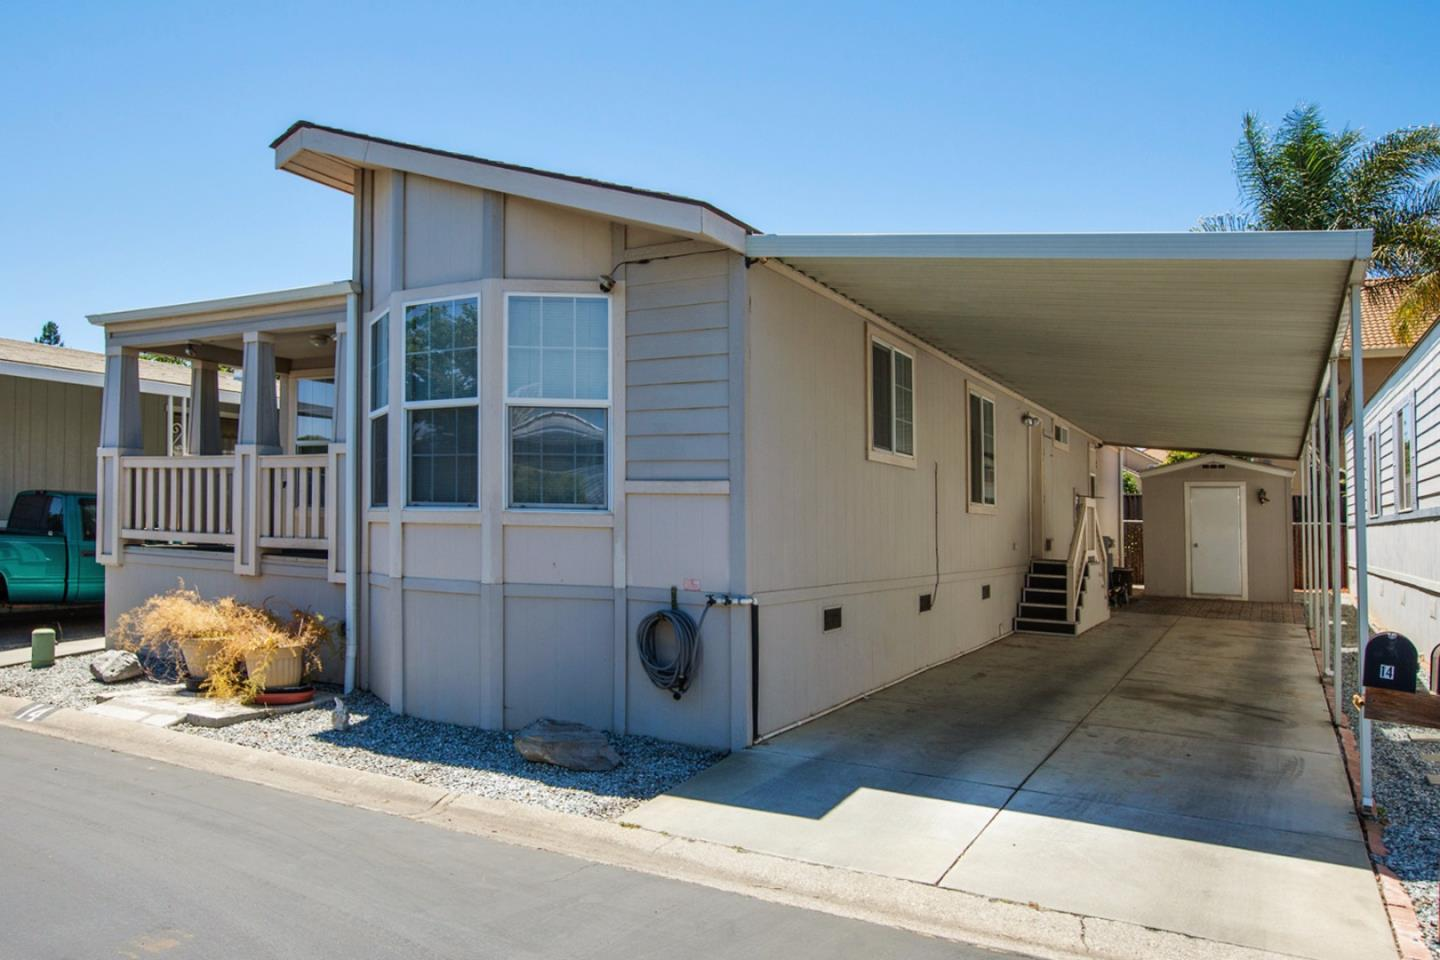 575 San Pedro #14, Morgan Hill, CA 95037